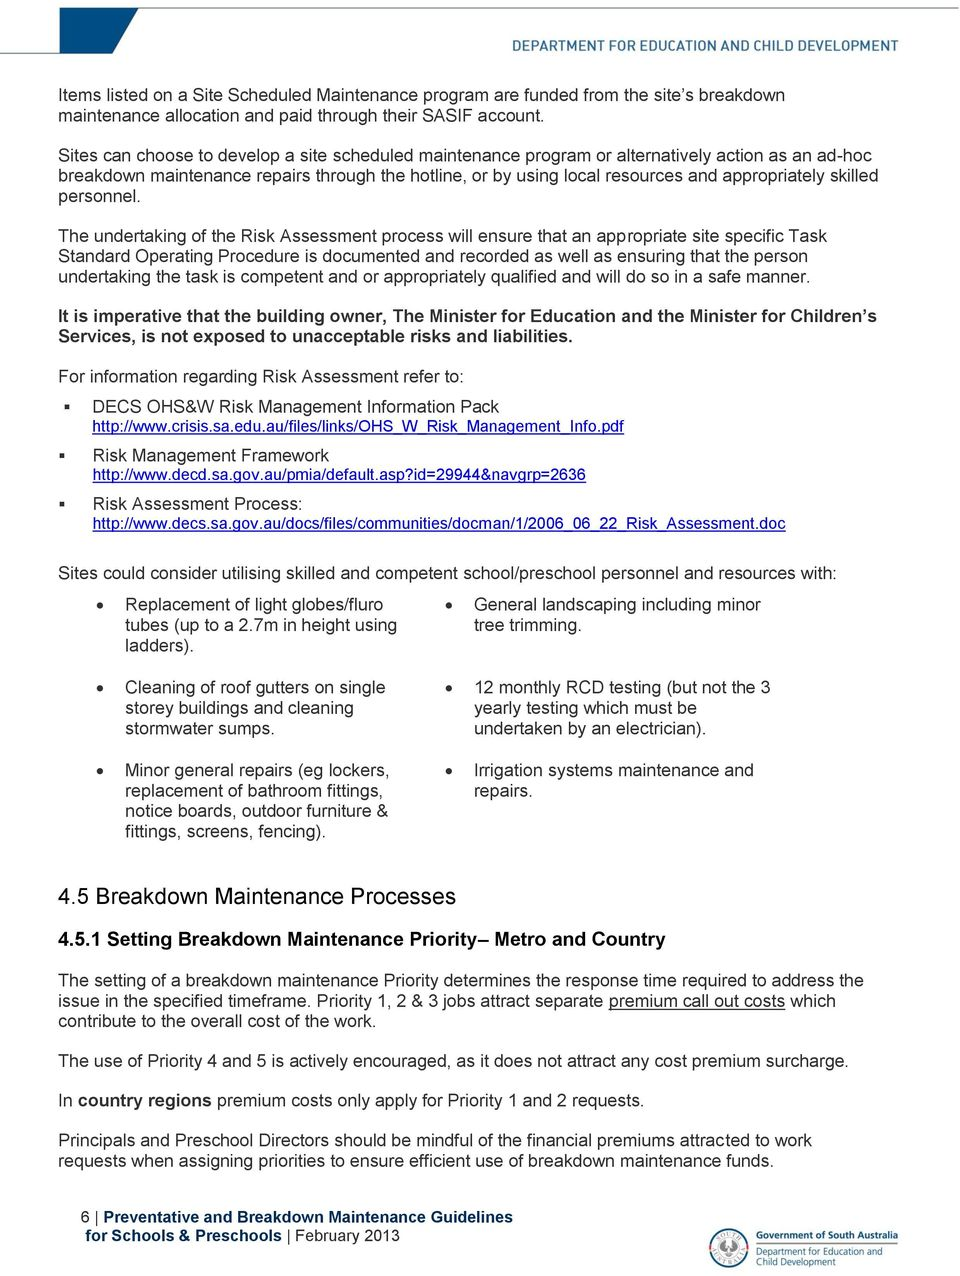 Preventative and Breakdown Maintenance Guidelines for Schools and